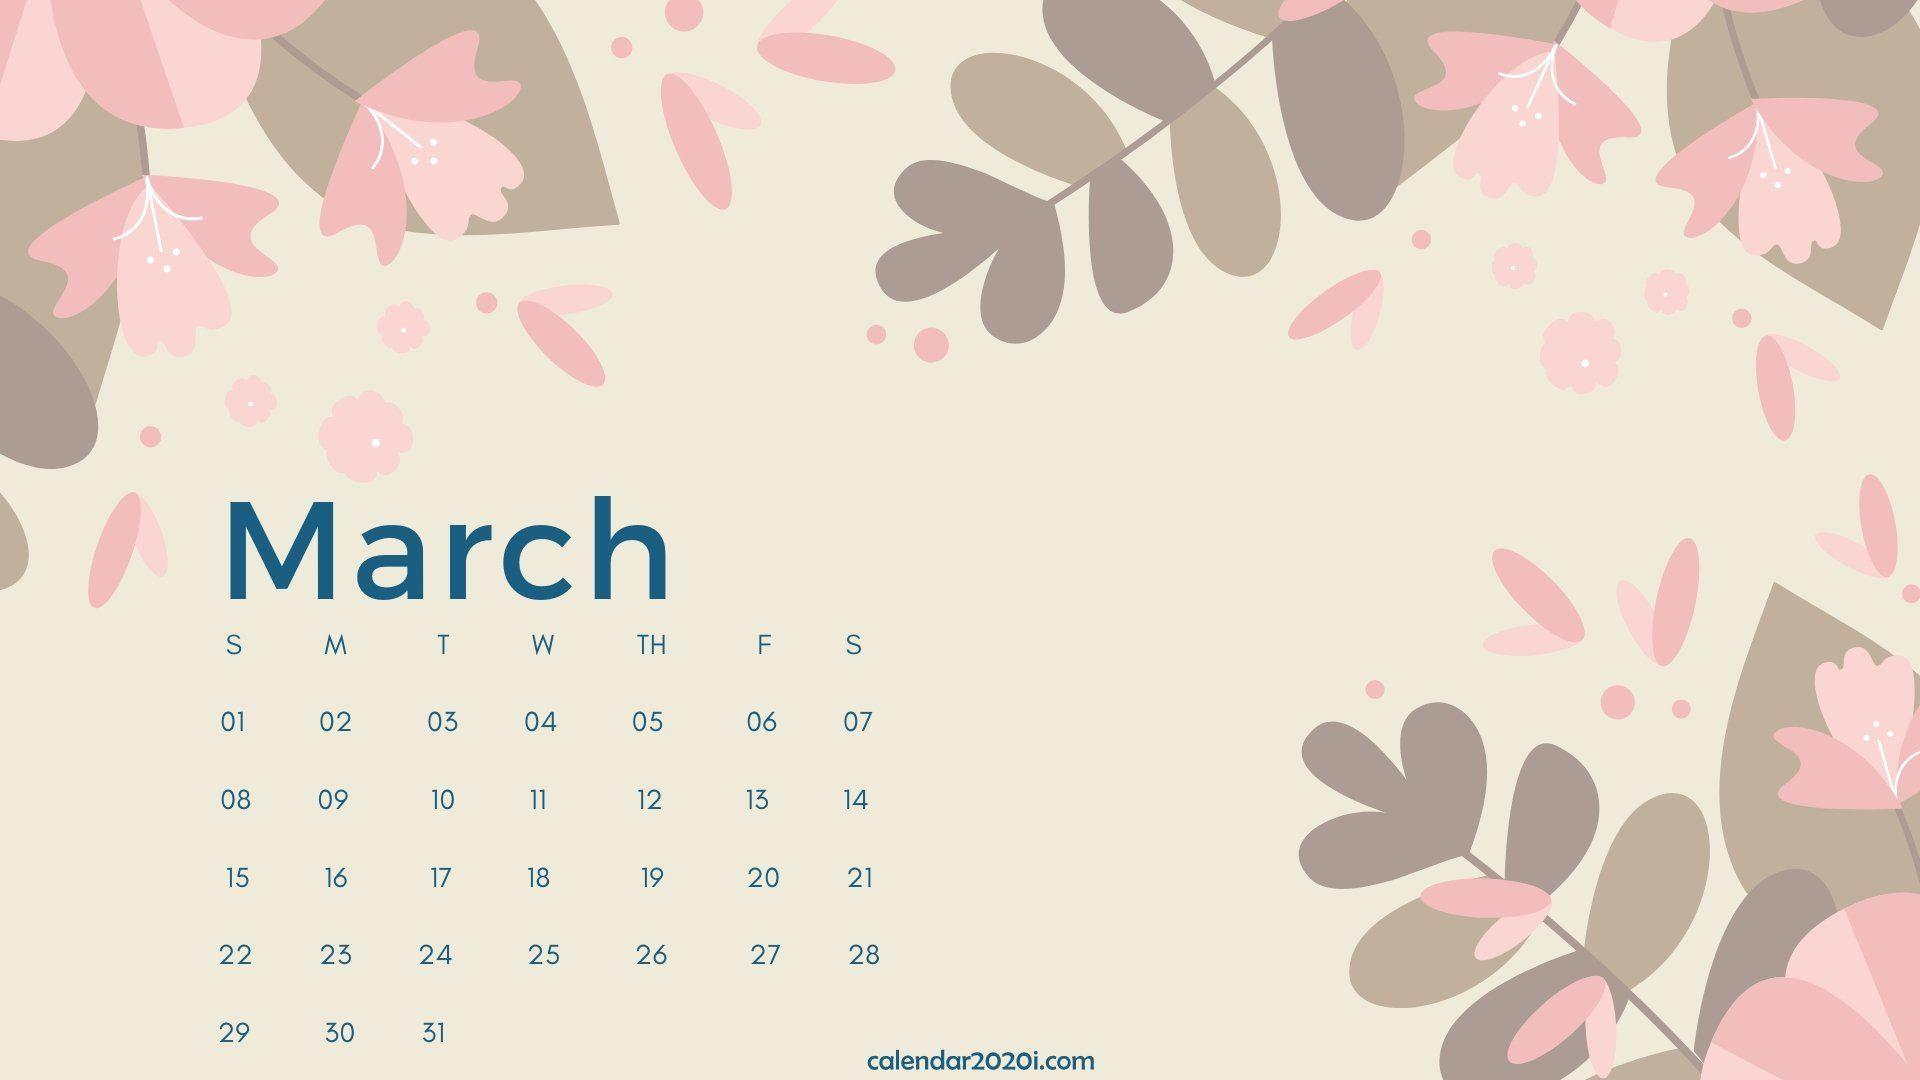 March 2020 Desktop Wallpapers Wallpaper Cave